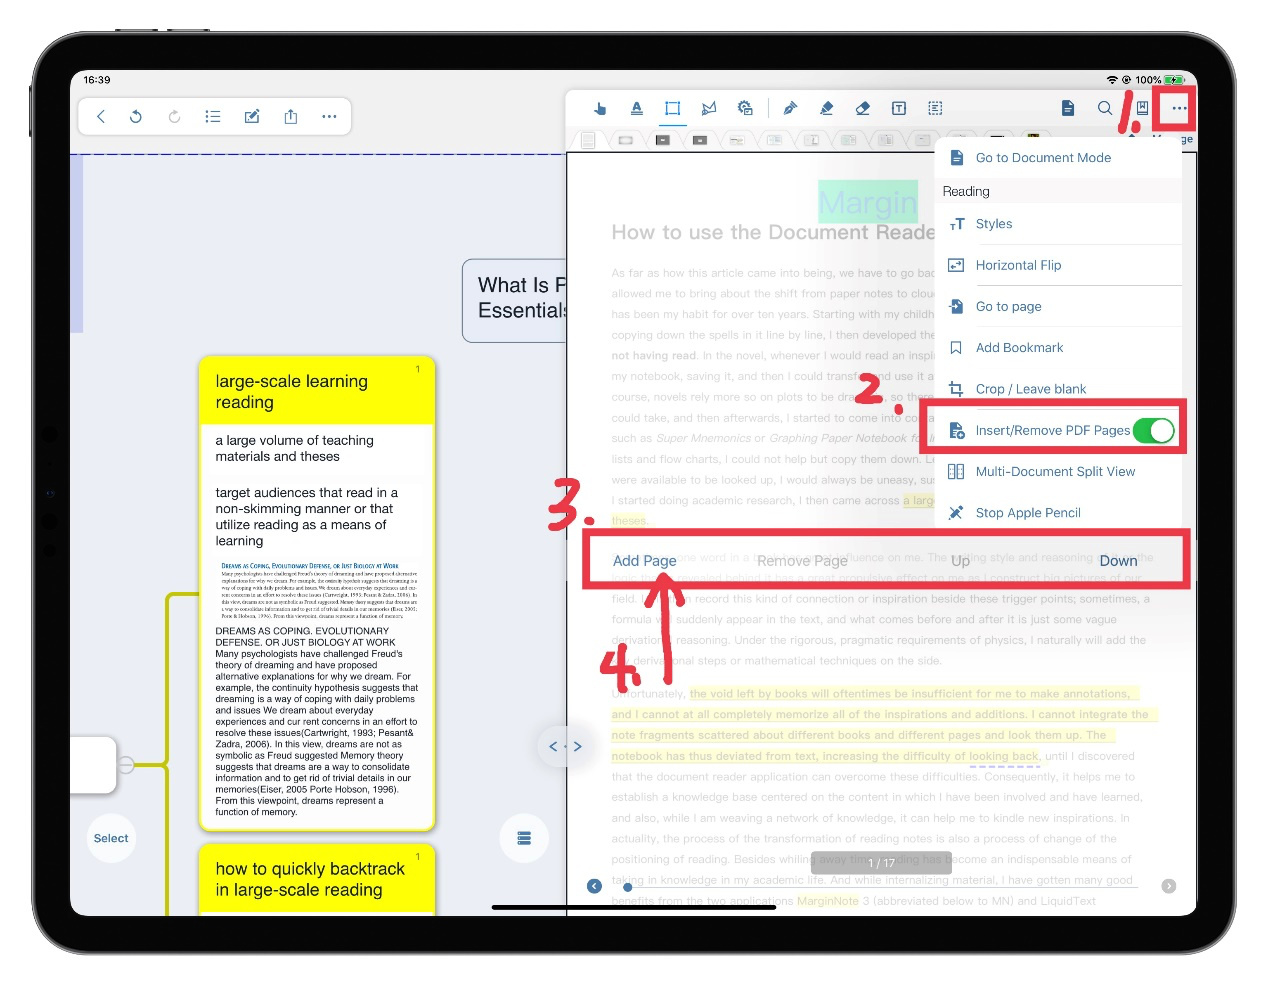 Abbyy Finereader Ocr Pro For Mac v3.6 update news】 this time, enjoy taking handwritten notes